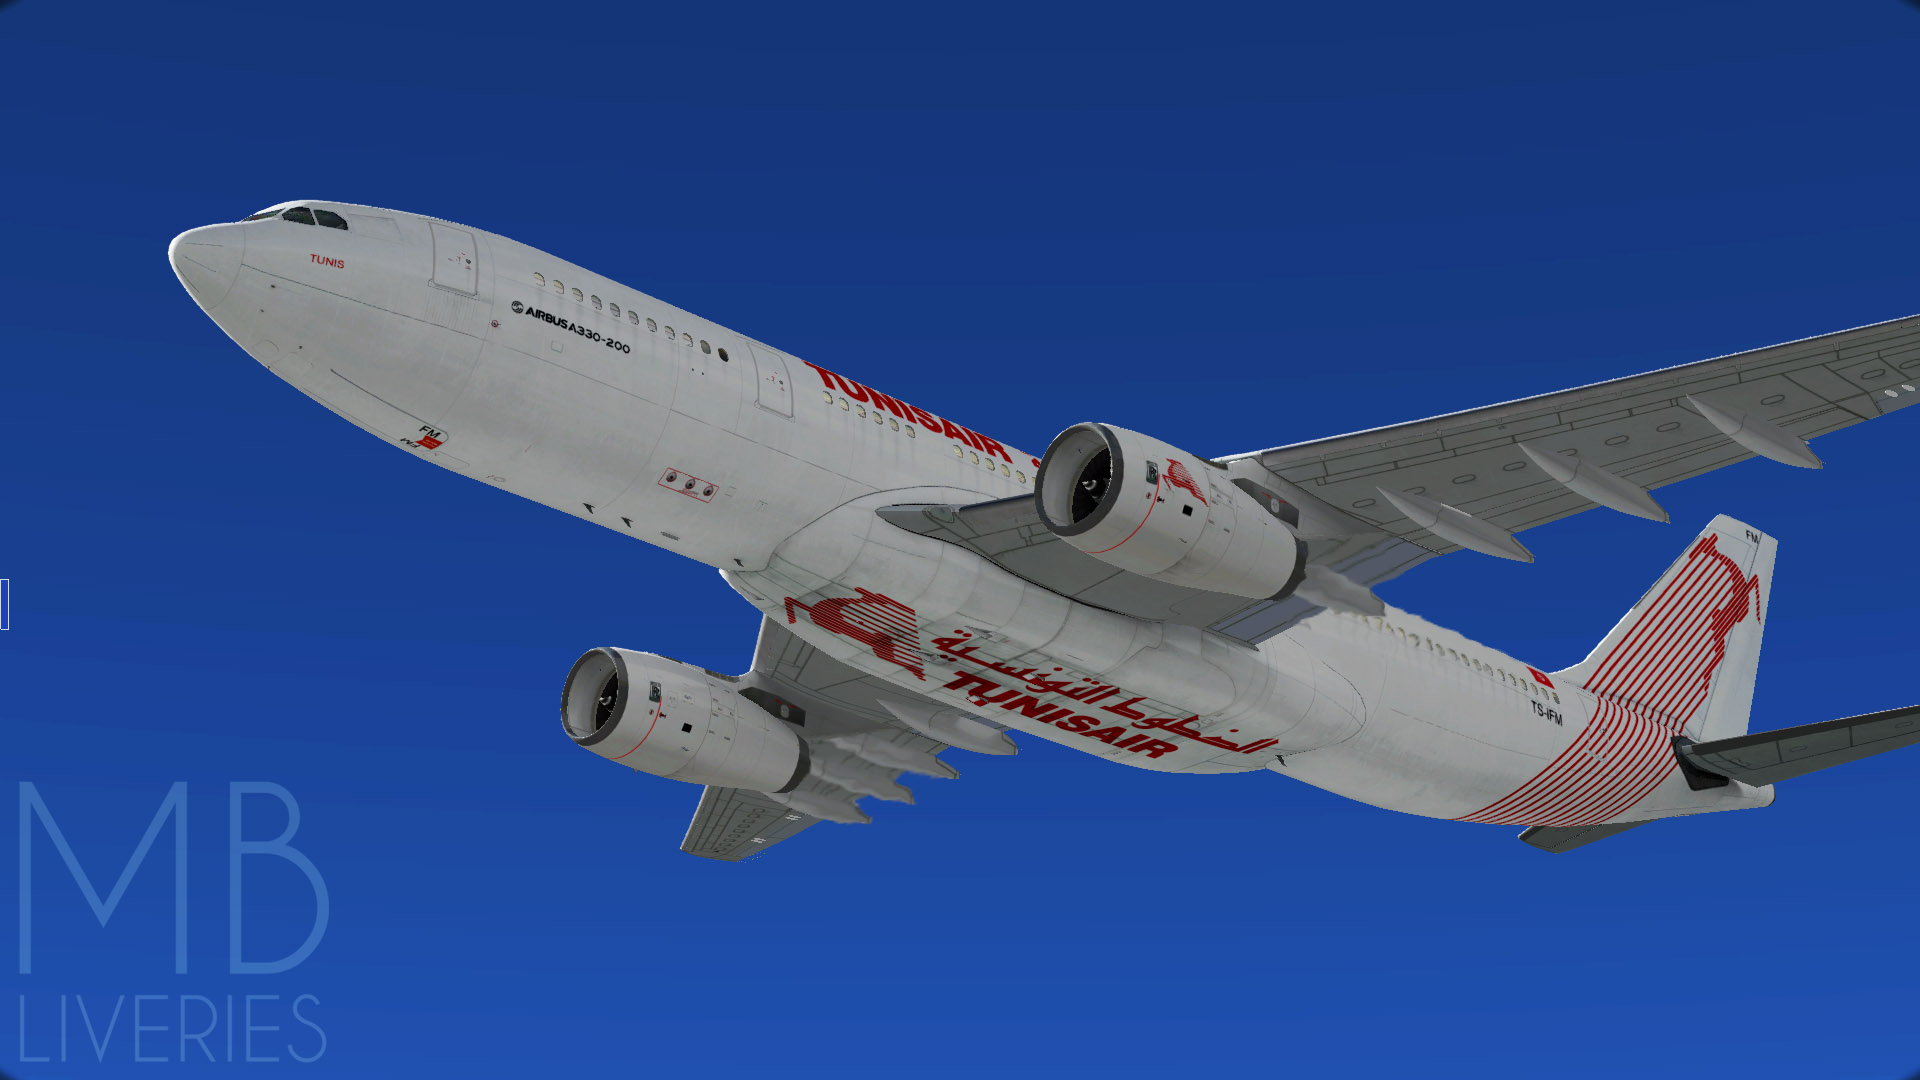 Tunisair - Airbus A330-200 JarDesin - Aircraft Skins - Liveries - X